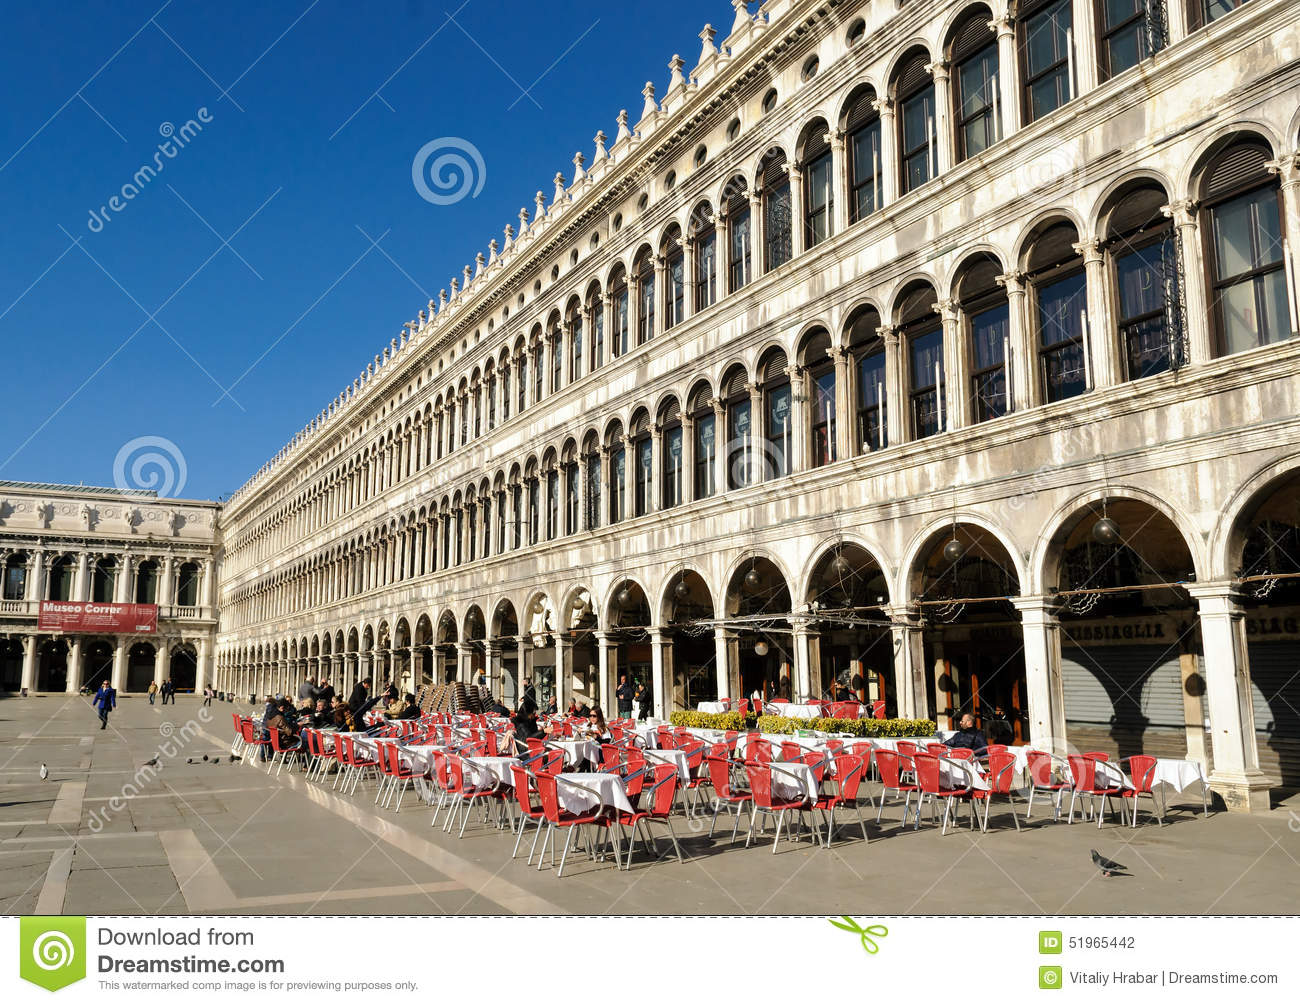 piazza san marco and the architecture of romance in summertime essay Michele lafountain  childhood experiences in an essay called los nenes con los nenes  military service in world war i brazzi attended san marco.